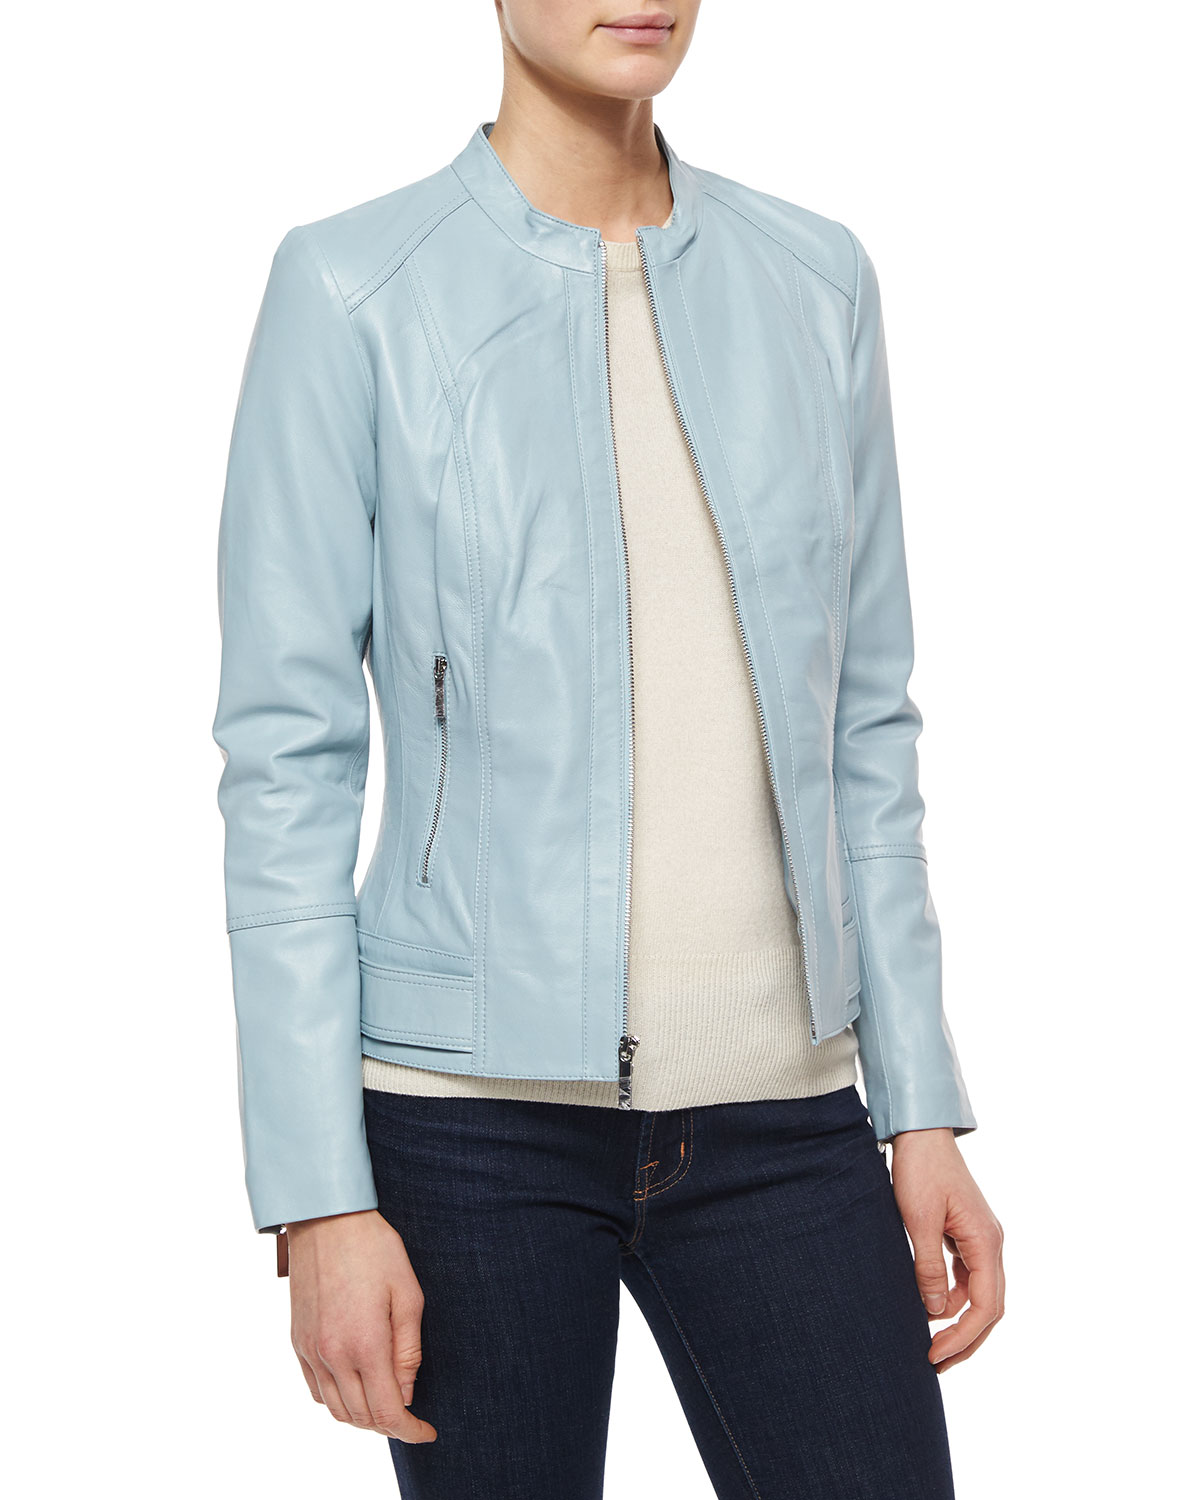 Leather Zip-Front Jacket, Light Blue, Size: LARGE (12-14) - Neiman Marcus